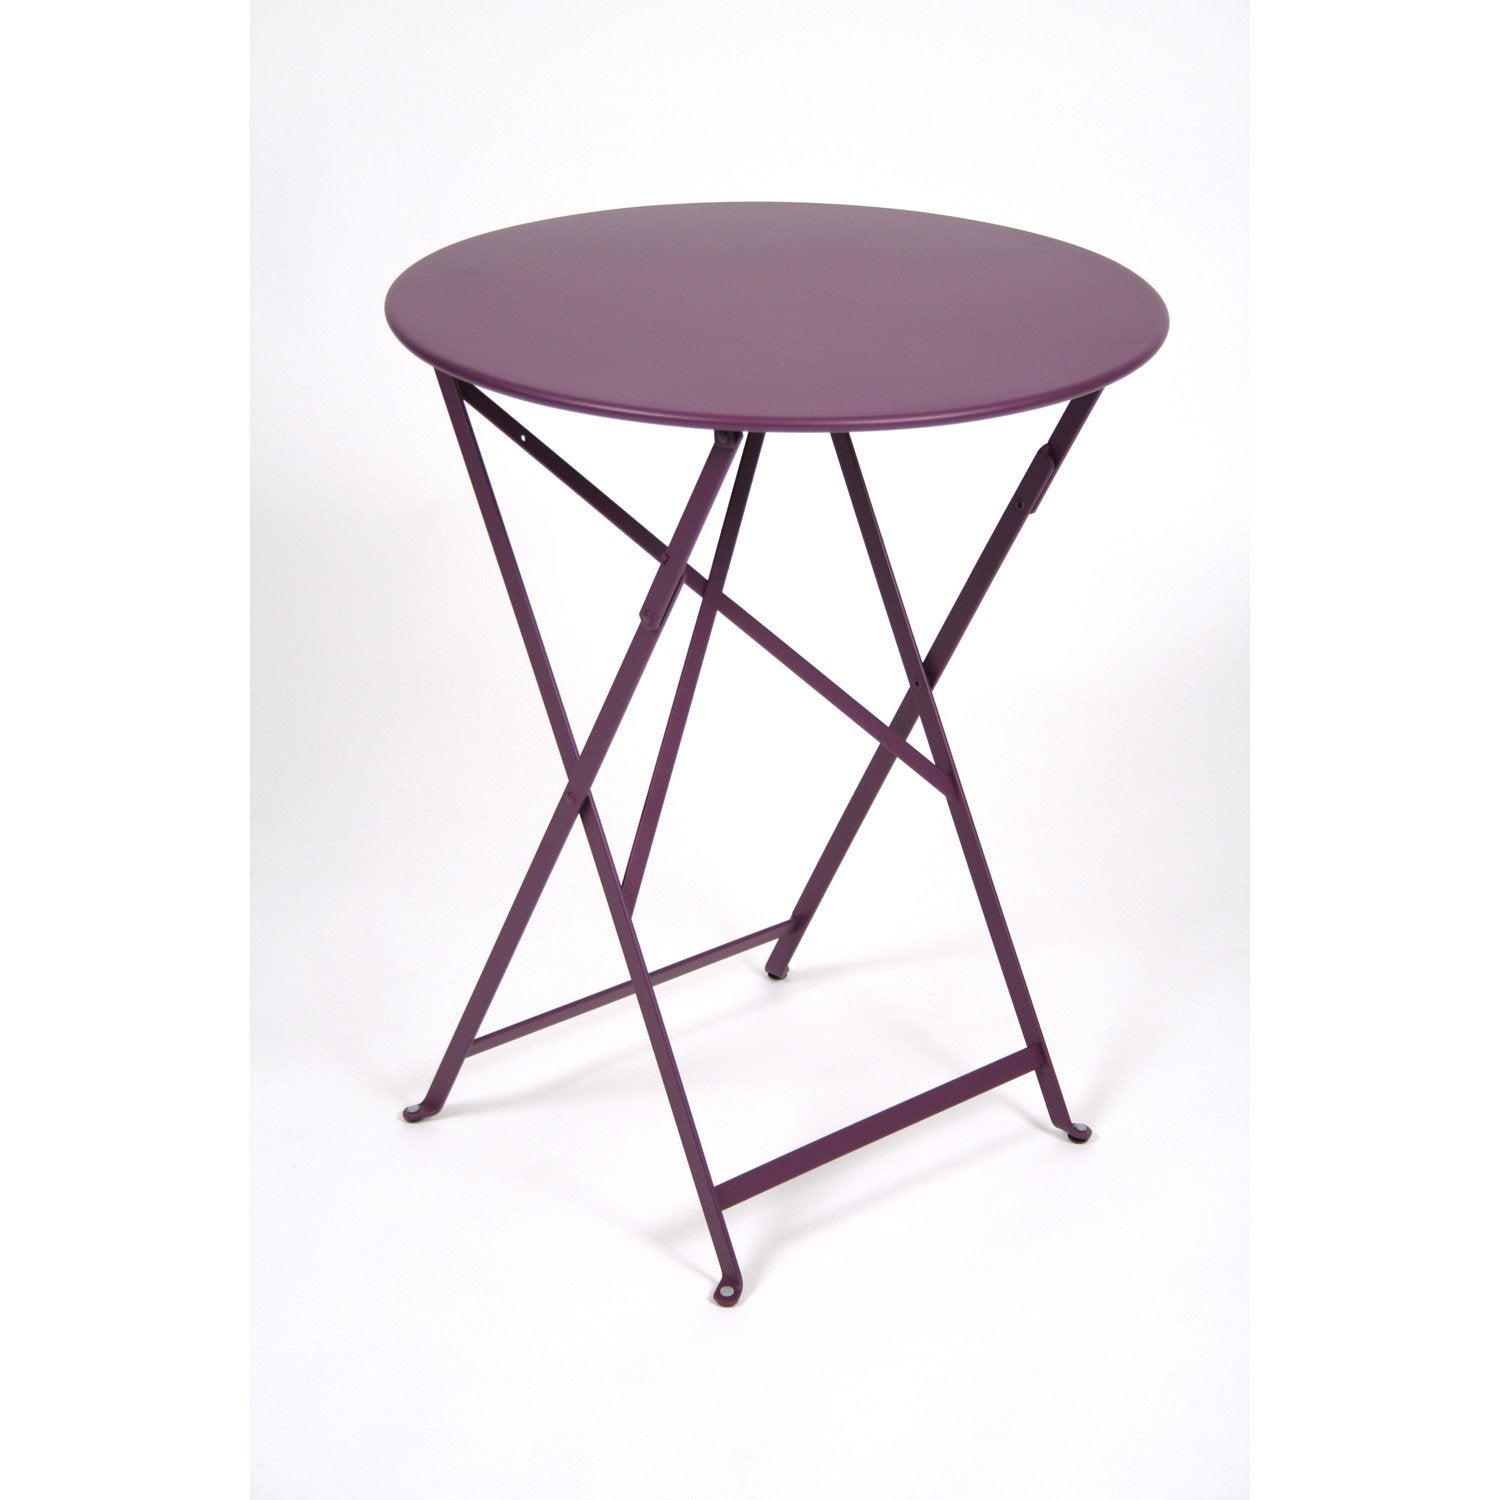 Petite Table Ronde Cuisine Of Table De Jardin Ronde Bistro Fermob Leroy Merlin